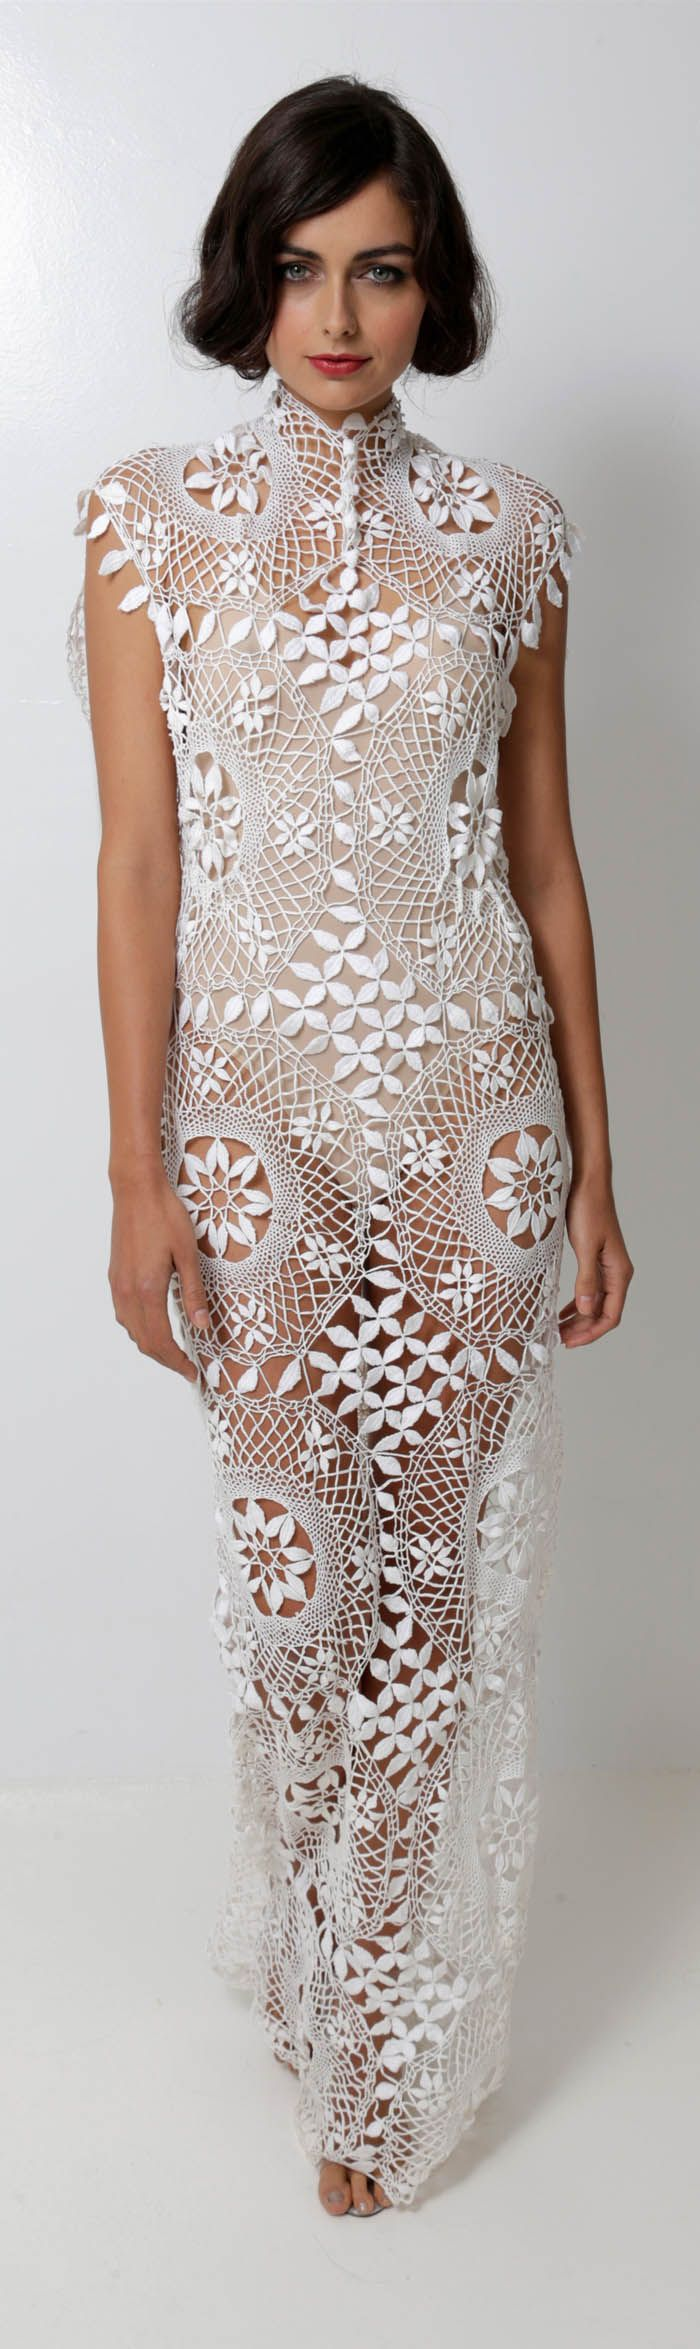 Norma Kamali Spring Summer 2013 Ready To Wear Collection